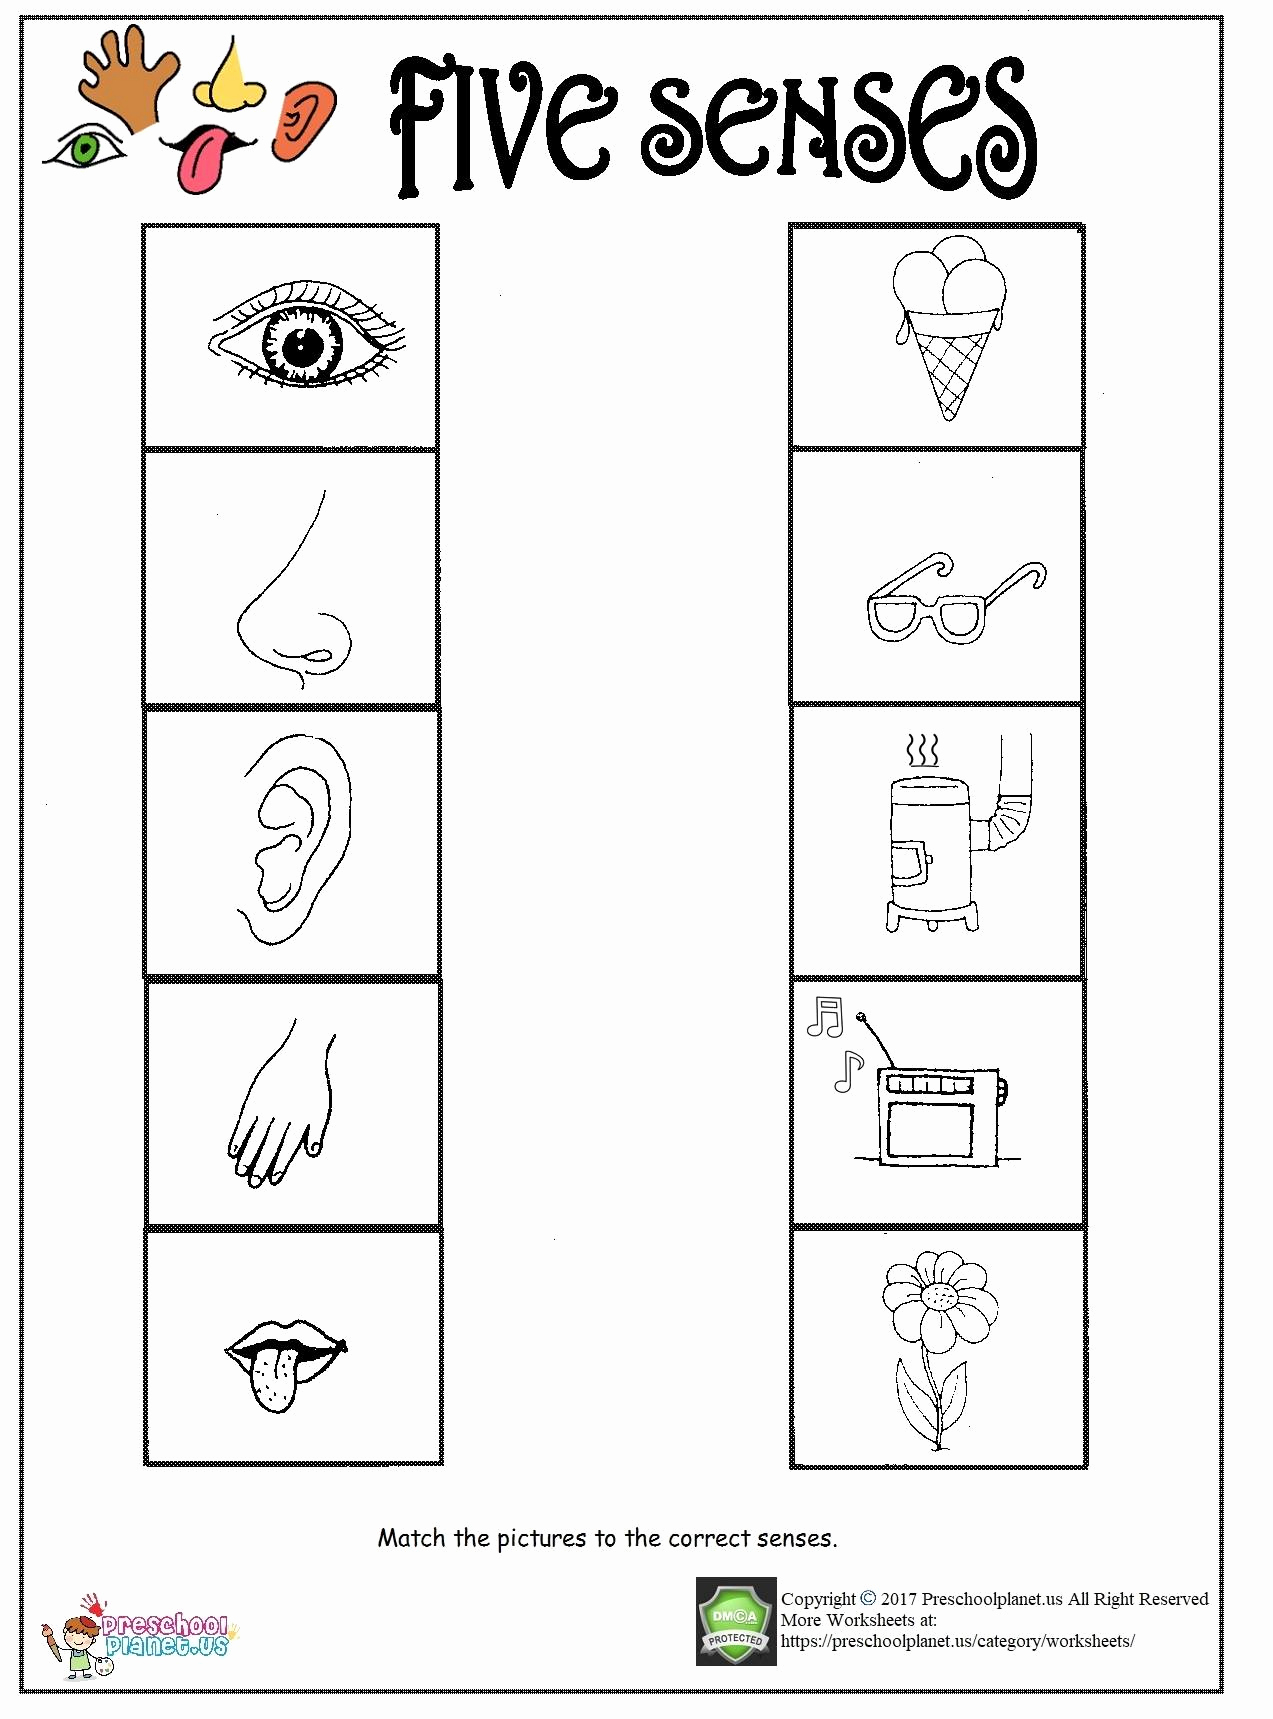 5 Senses Worksheets for Kindergarten Unique Printable Five Senses Worksheet